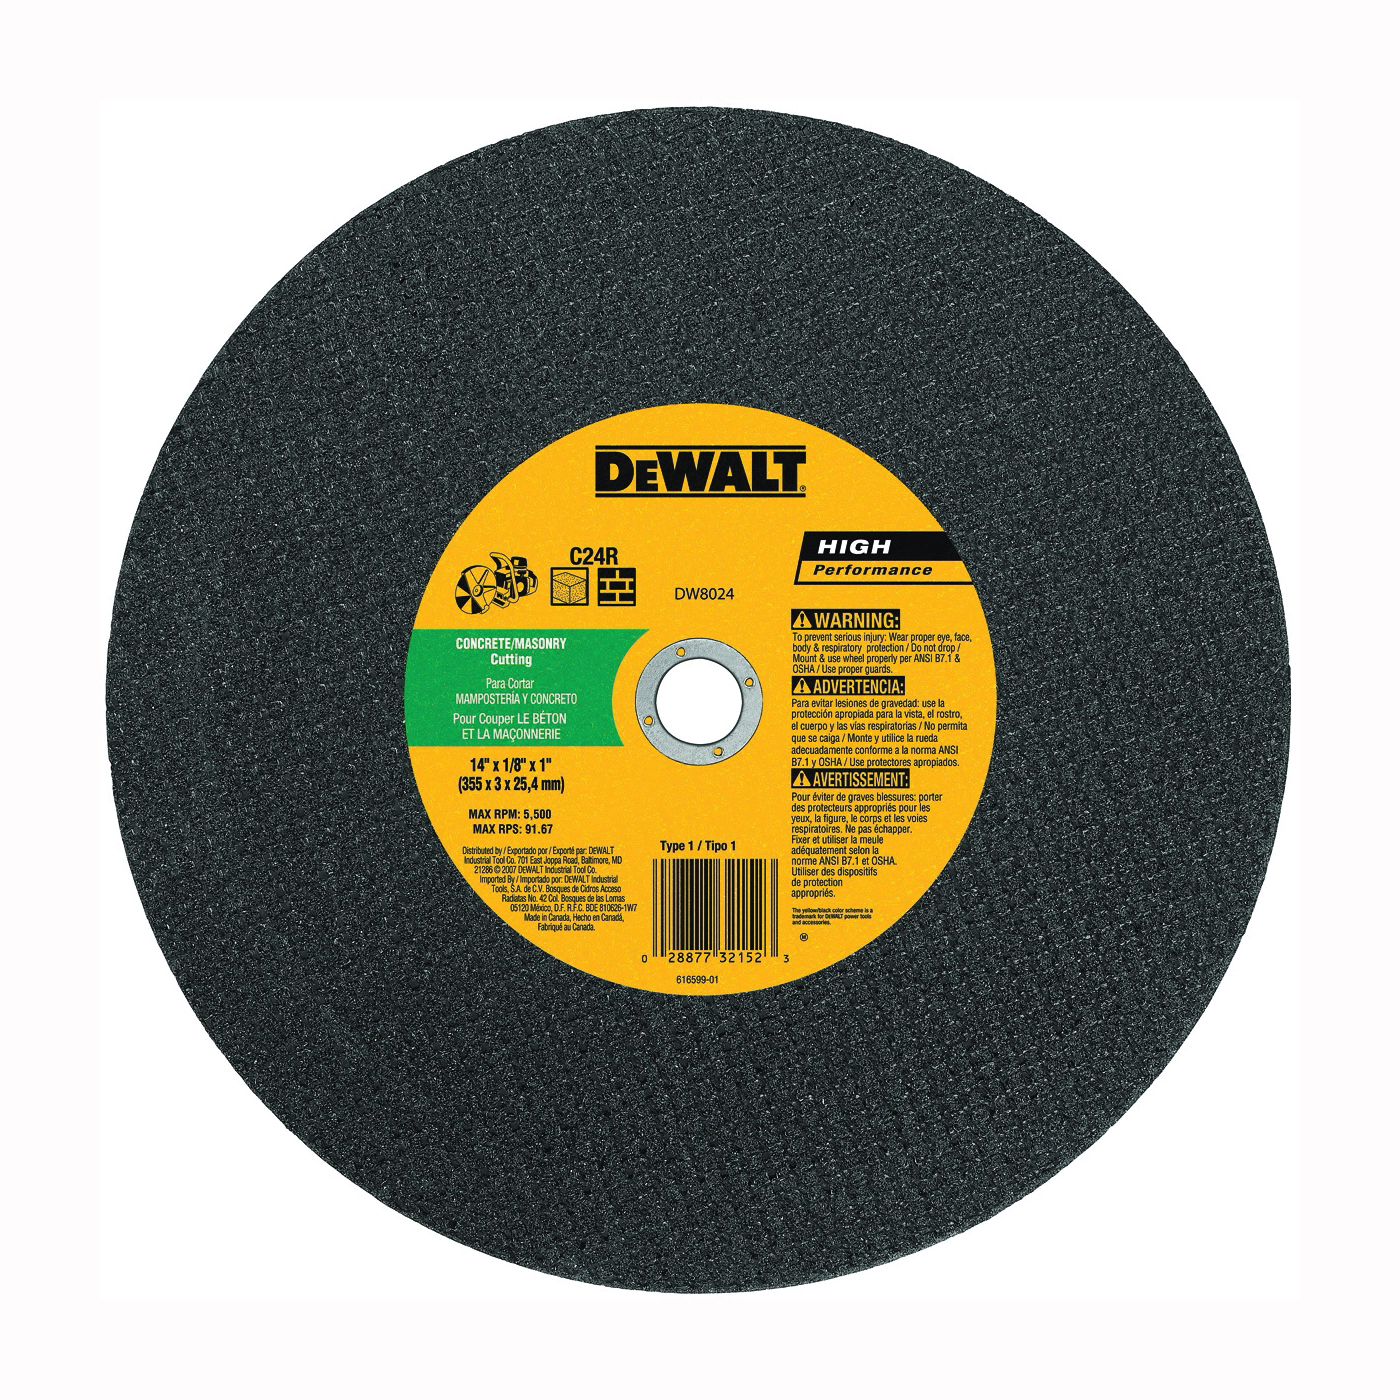 Picture of DeWALT DW8024 Cutting Wheel, 14 in Dia, 1/8 in Thick, 1 in Arbor, Silicone Carbide Abrasive